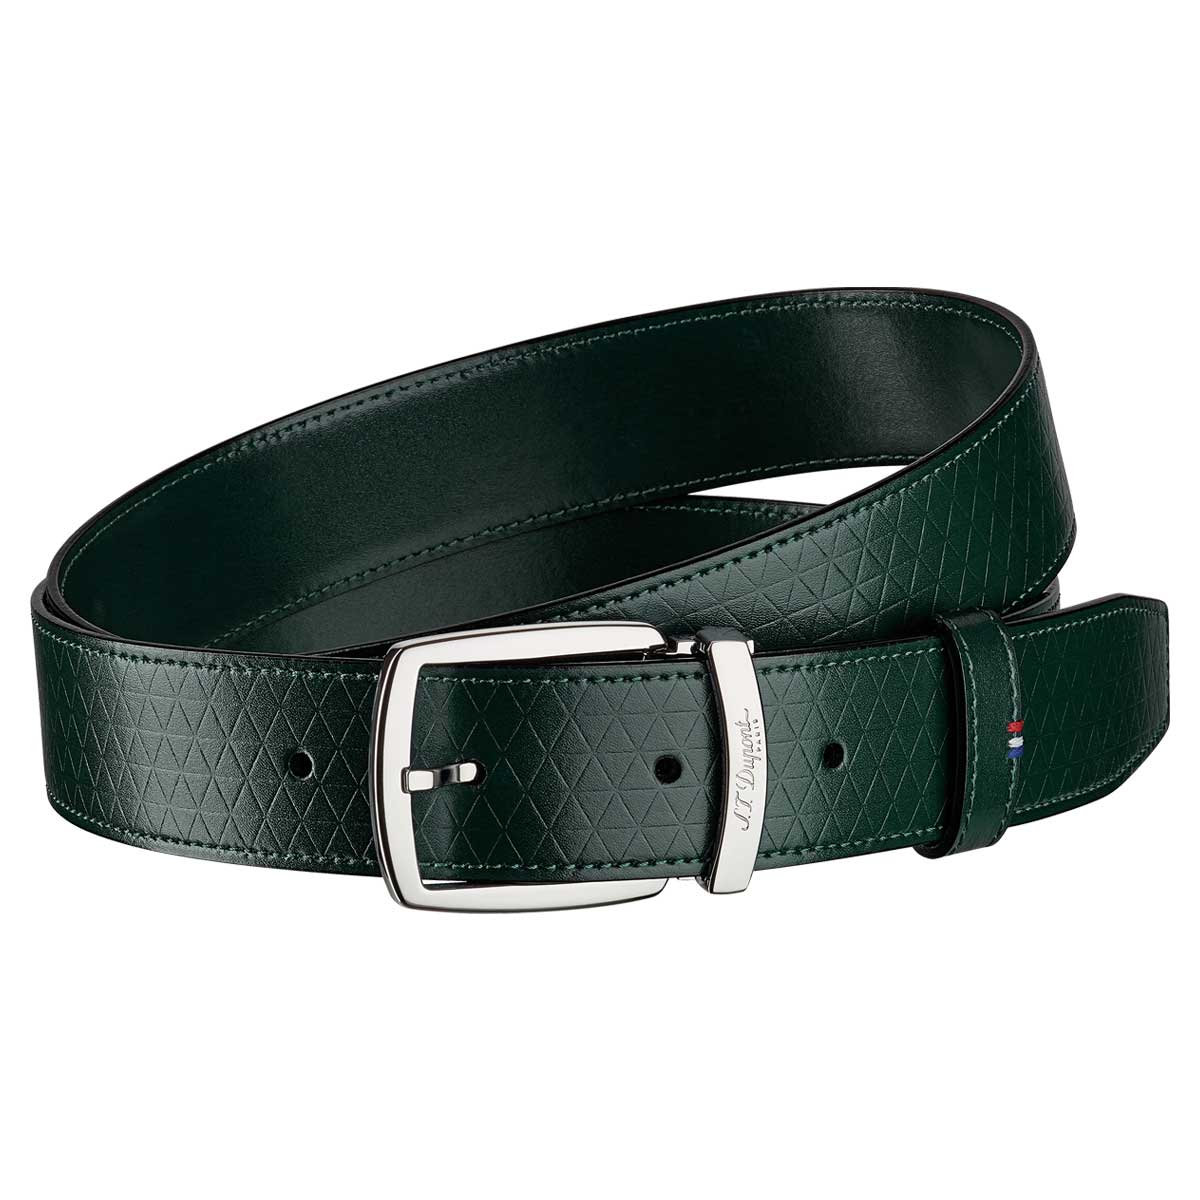 ST Dupont Fire Head Line D Intense Green Leather Belt